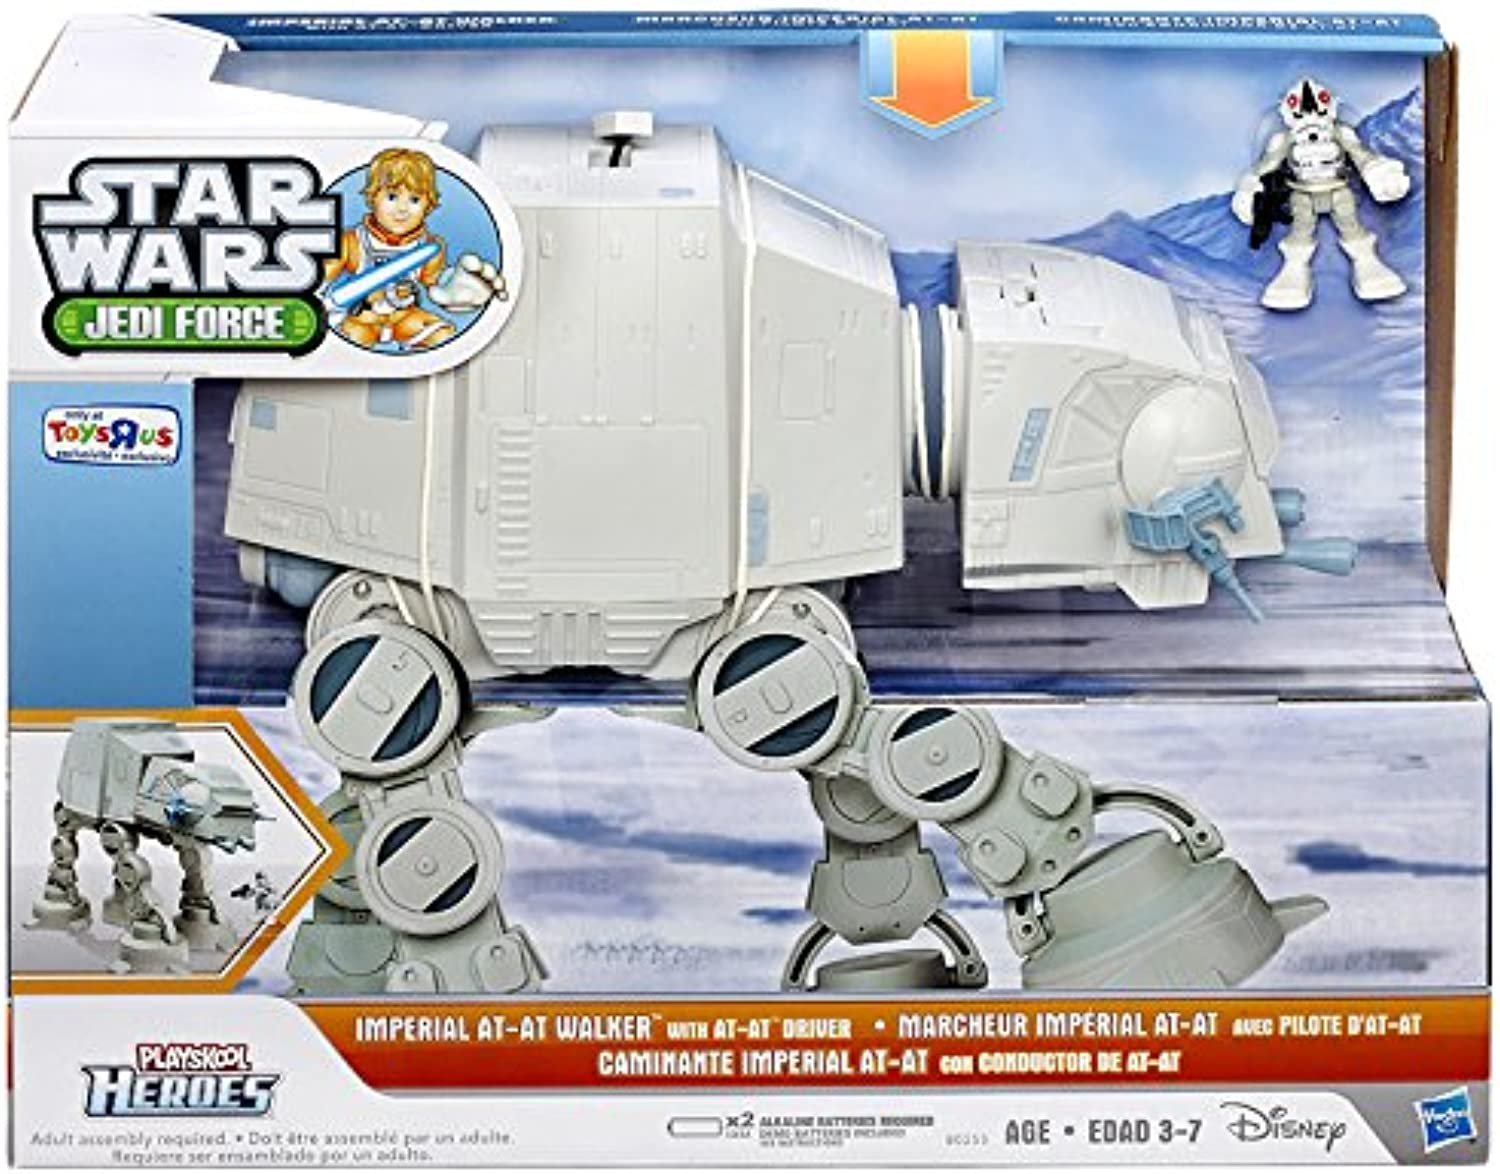 Star Wars Jedi Force Imperial AT-AT Walker [with AT-AT Driver] by Star Wars